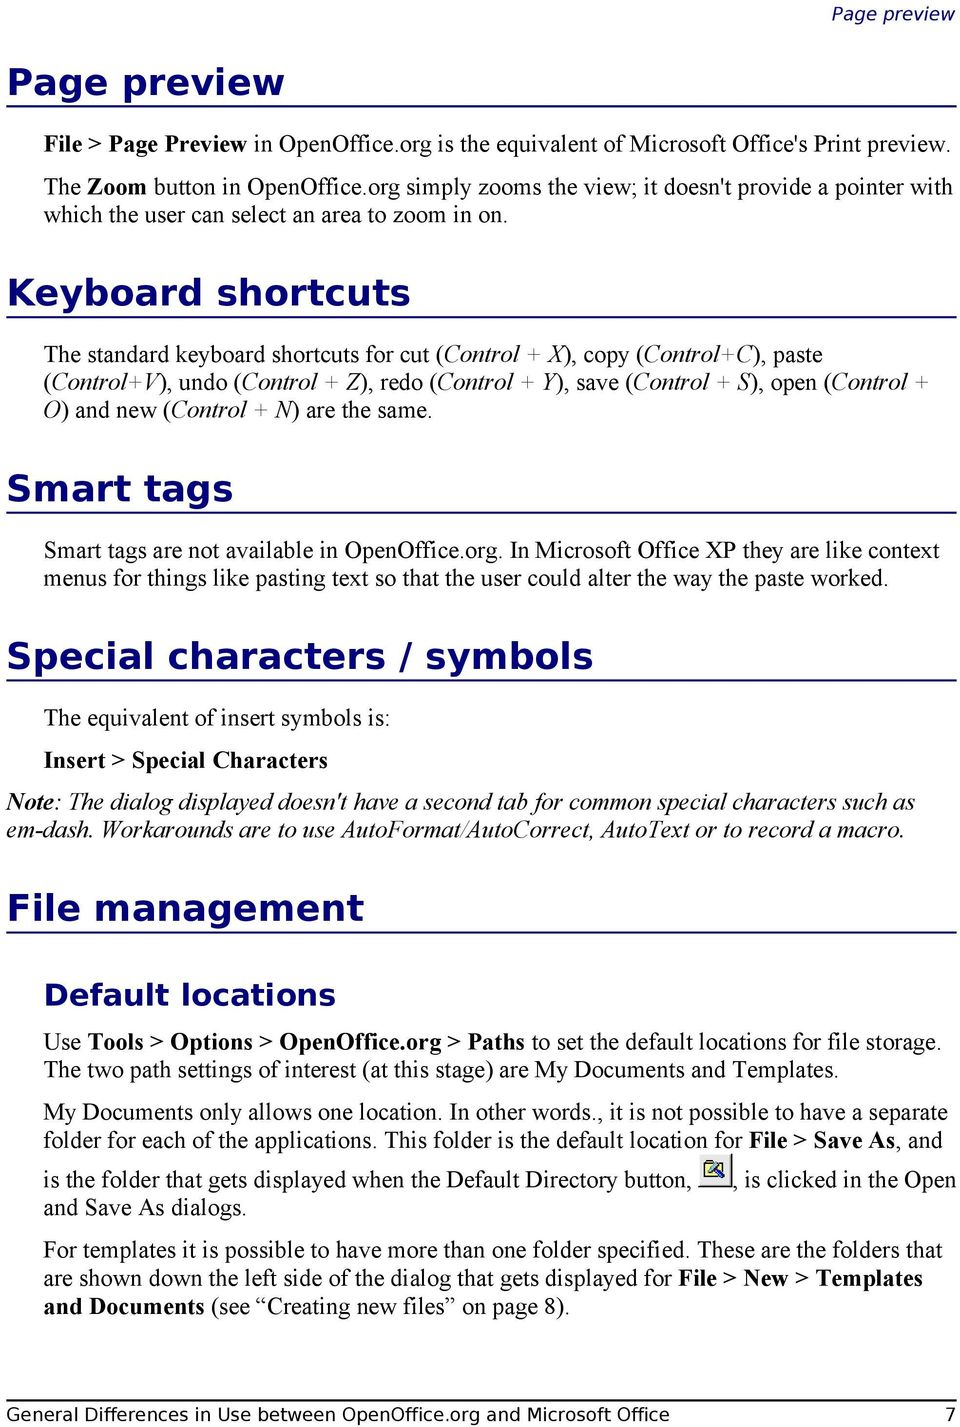 Keyboard shortcuts The standard keyboard shortcuts for cut (Control + X), copy (Control+C), paste (Control+V), undo (Control + Z), redo (Control + Y), save (Control + S), open (Control + O) and new